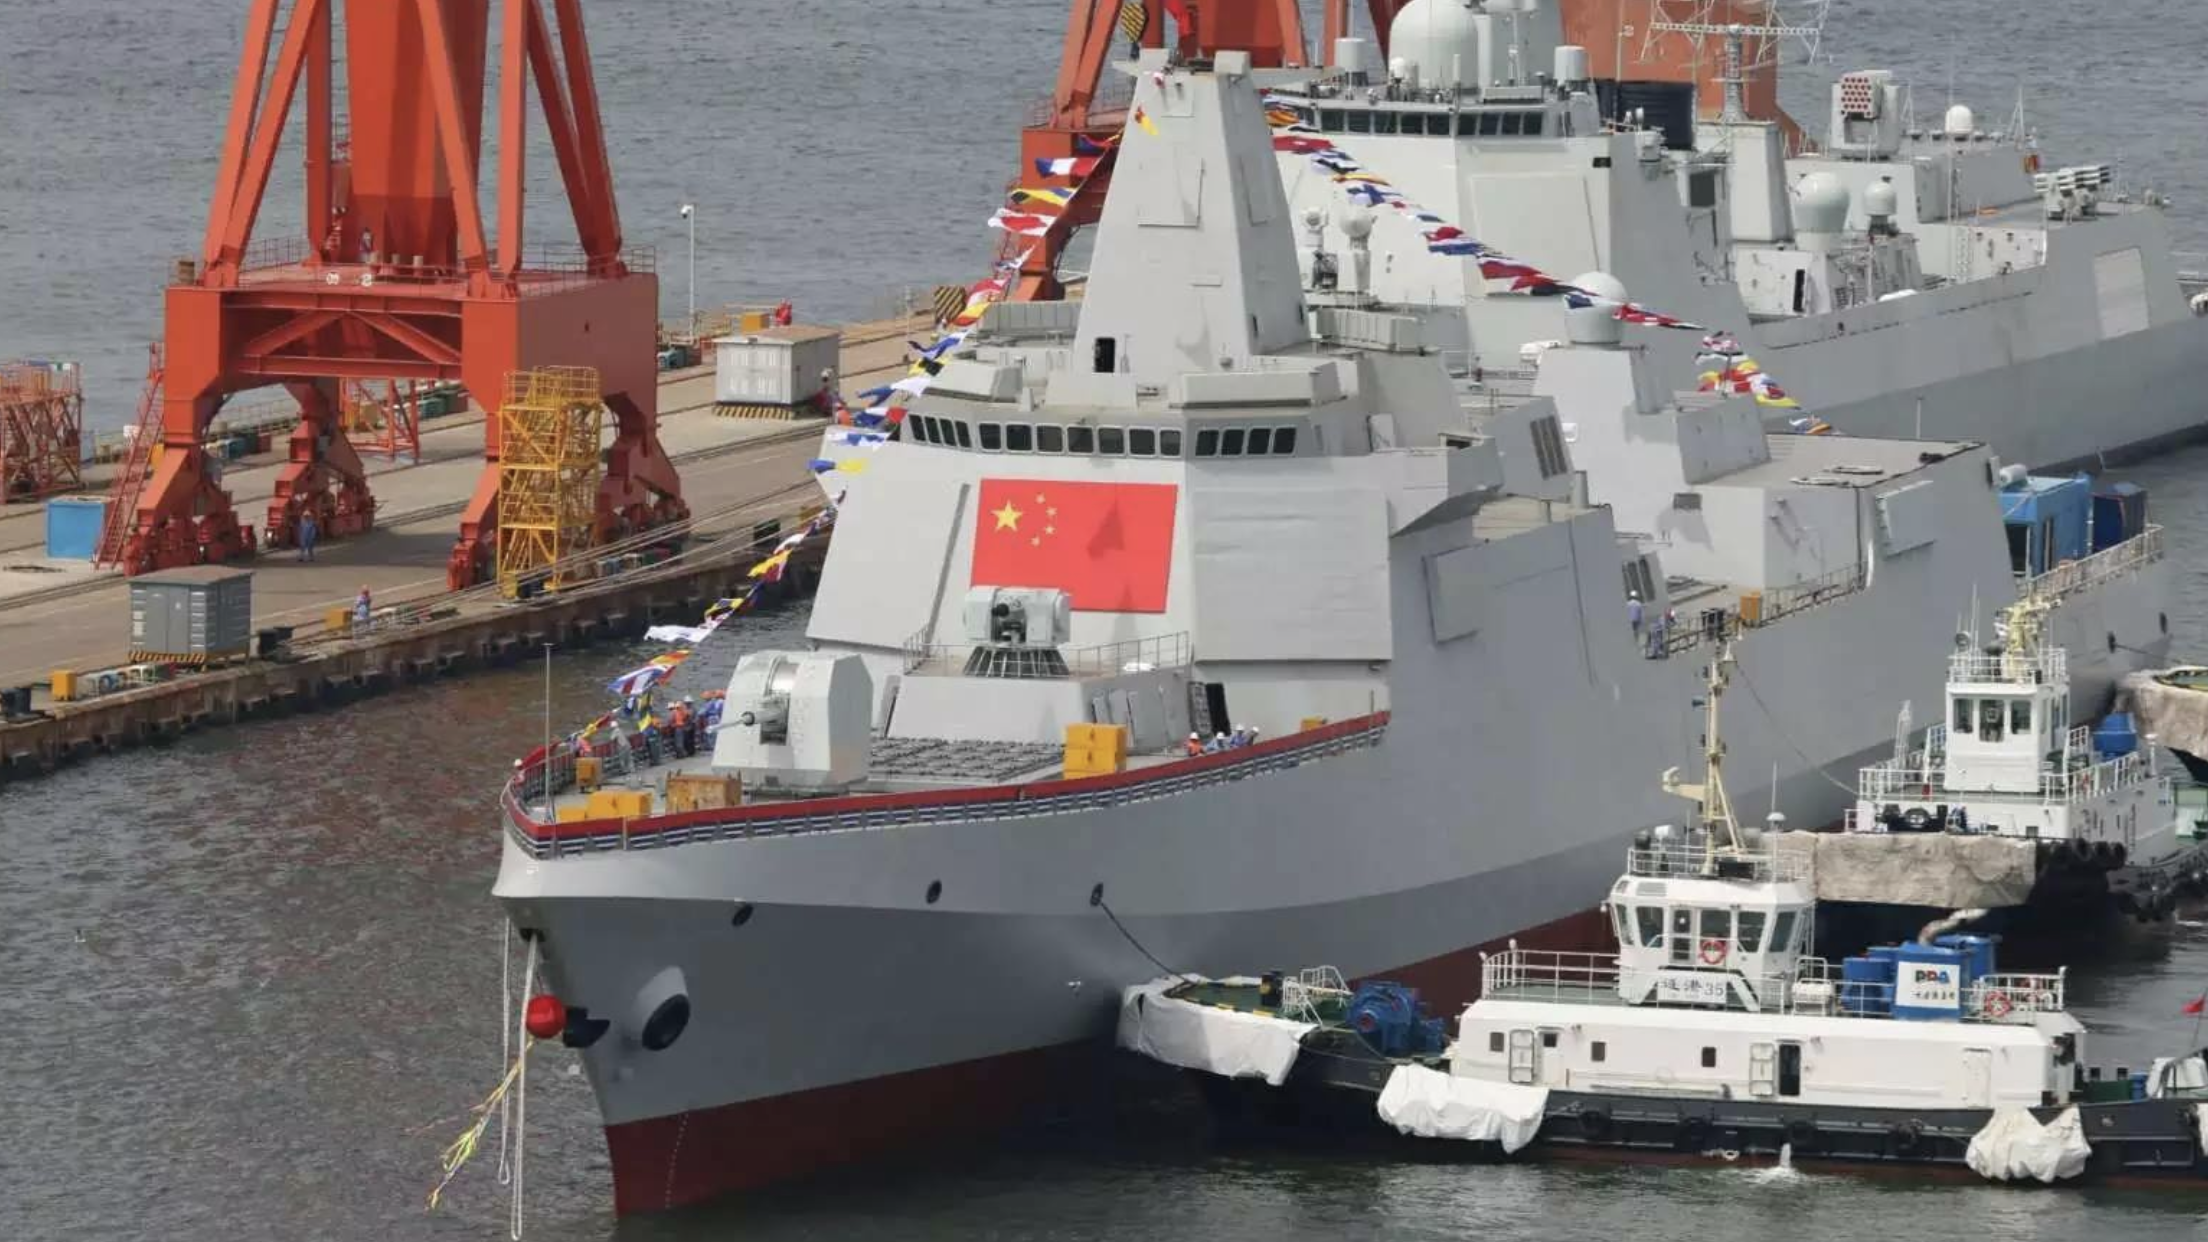 China's Elite Type 055 Destroyers - Not its Aircraft Carriers - Are